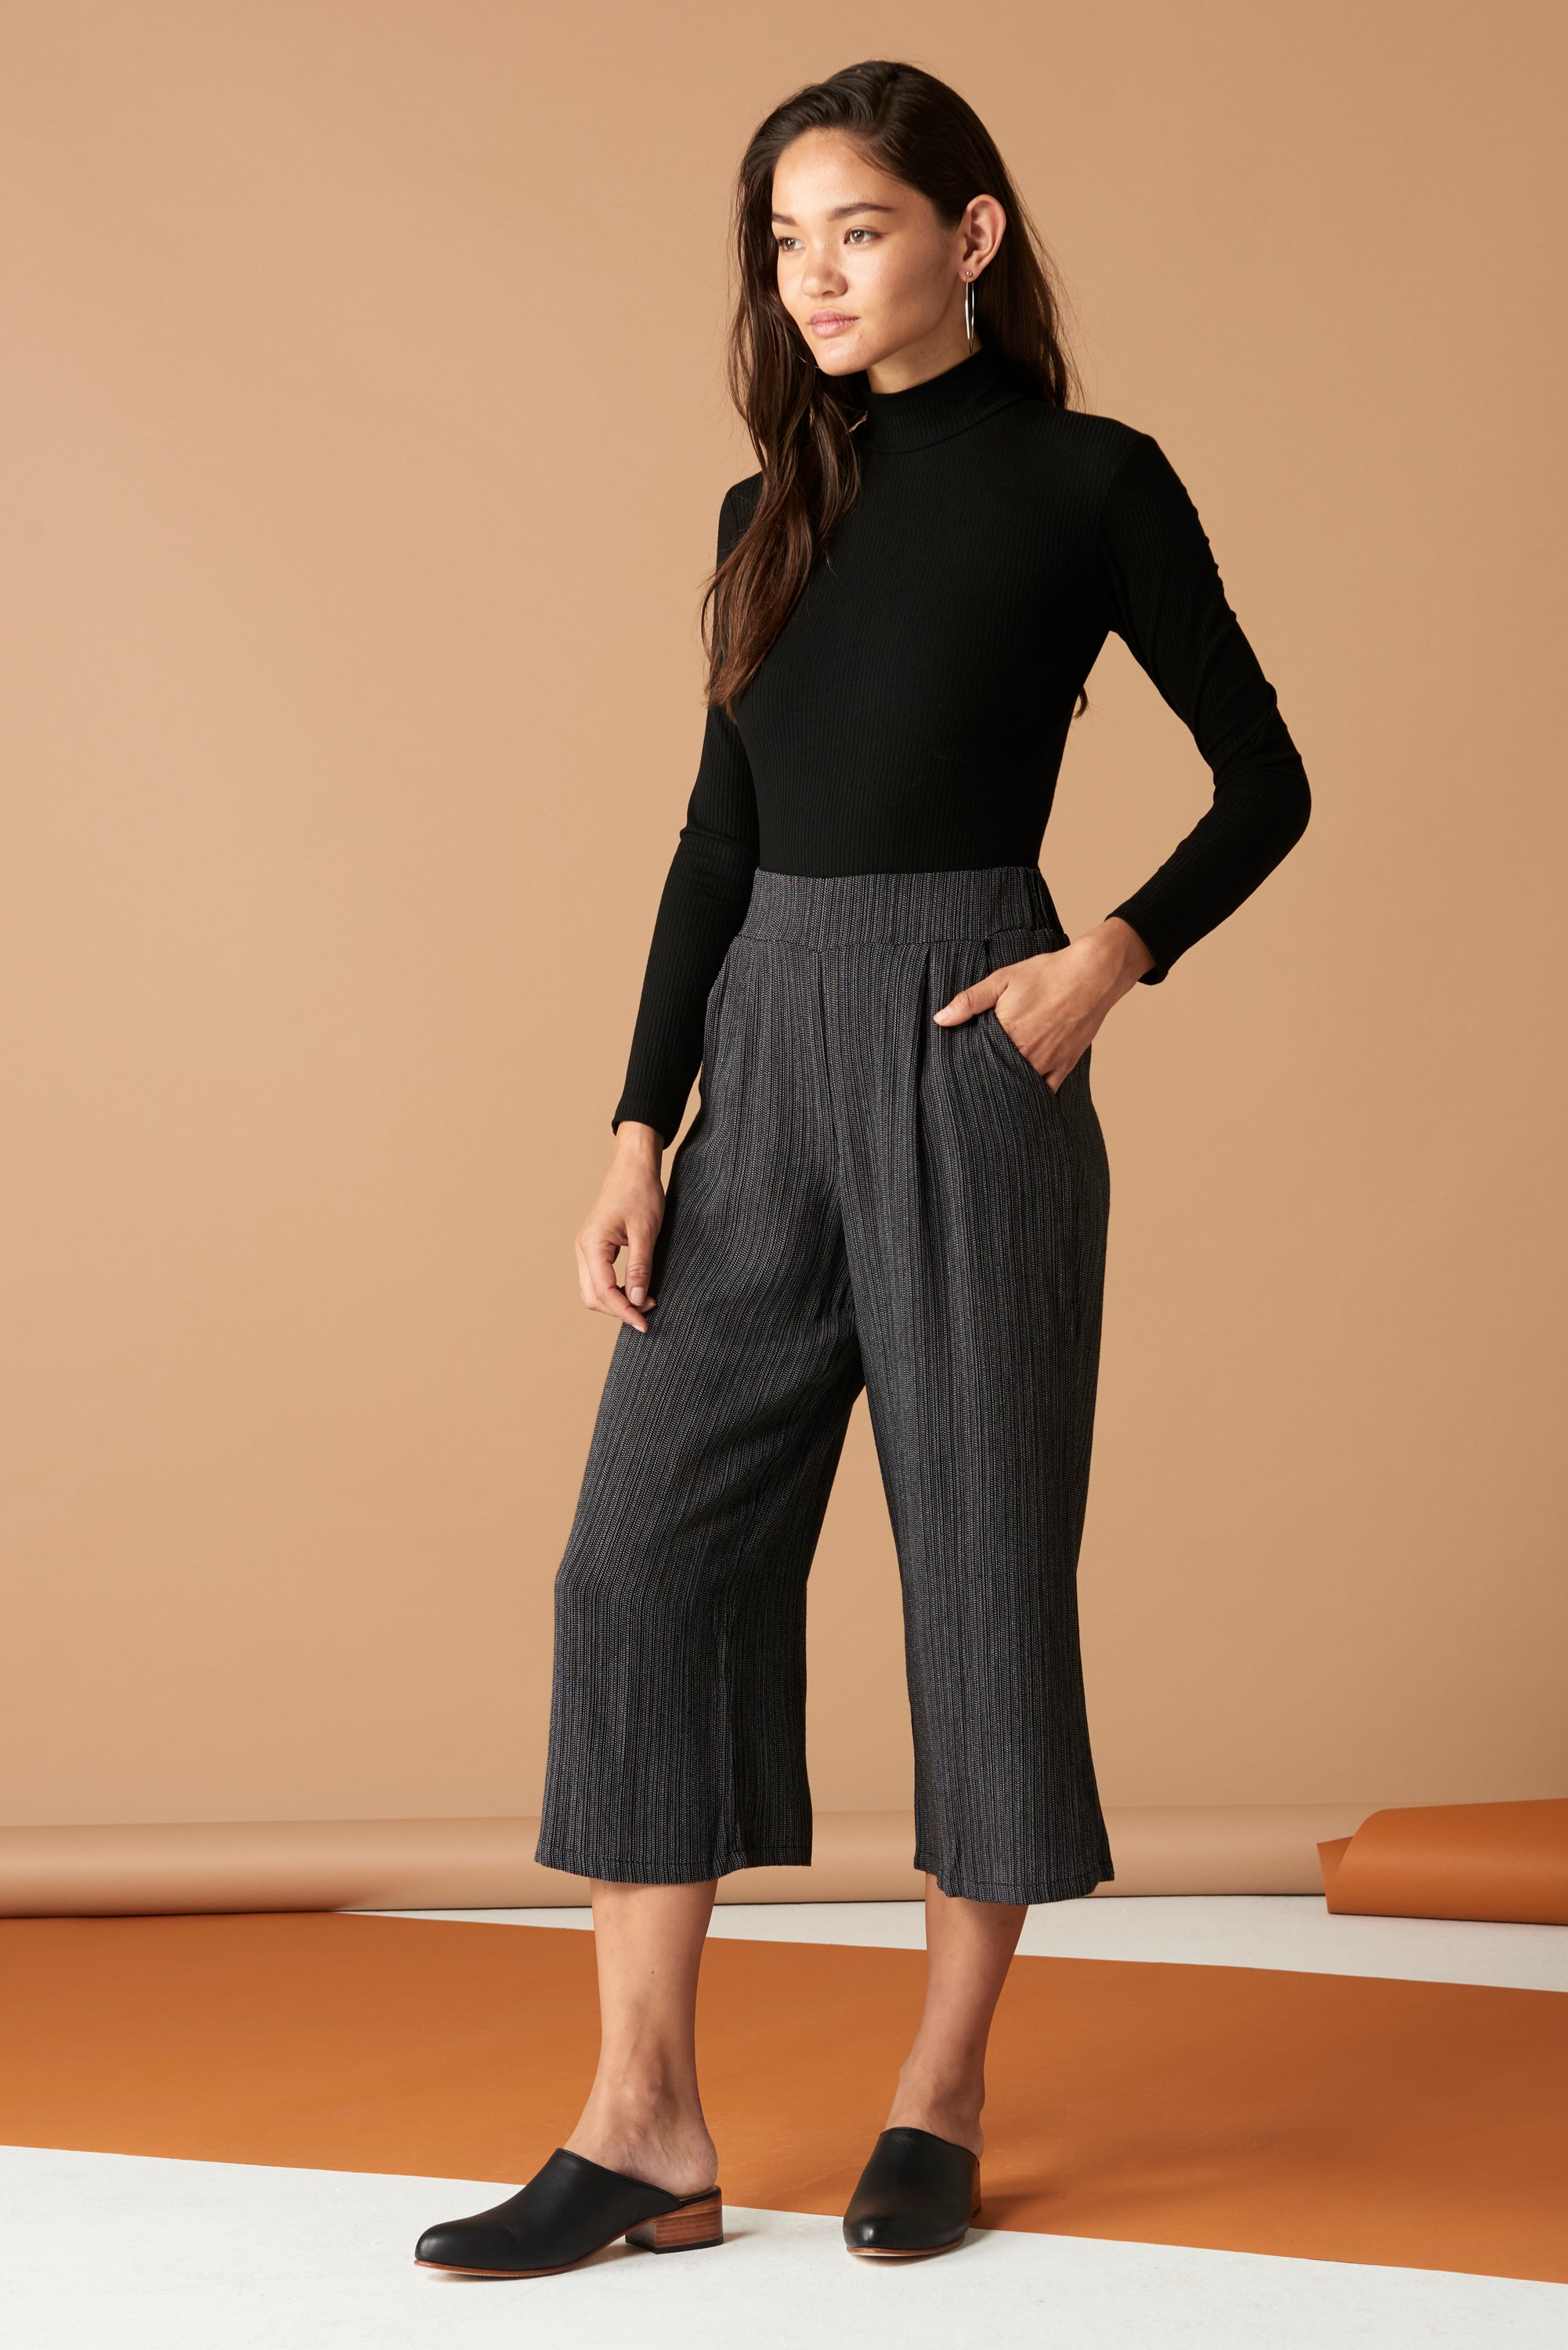 3d1c6a3370a6 The Valentina trouser /pants / culottes is the perfect pant for both work  and play. Made from sustainable fabric, made in LA.